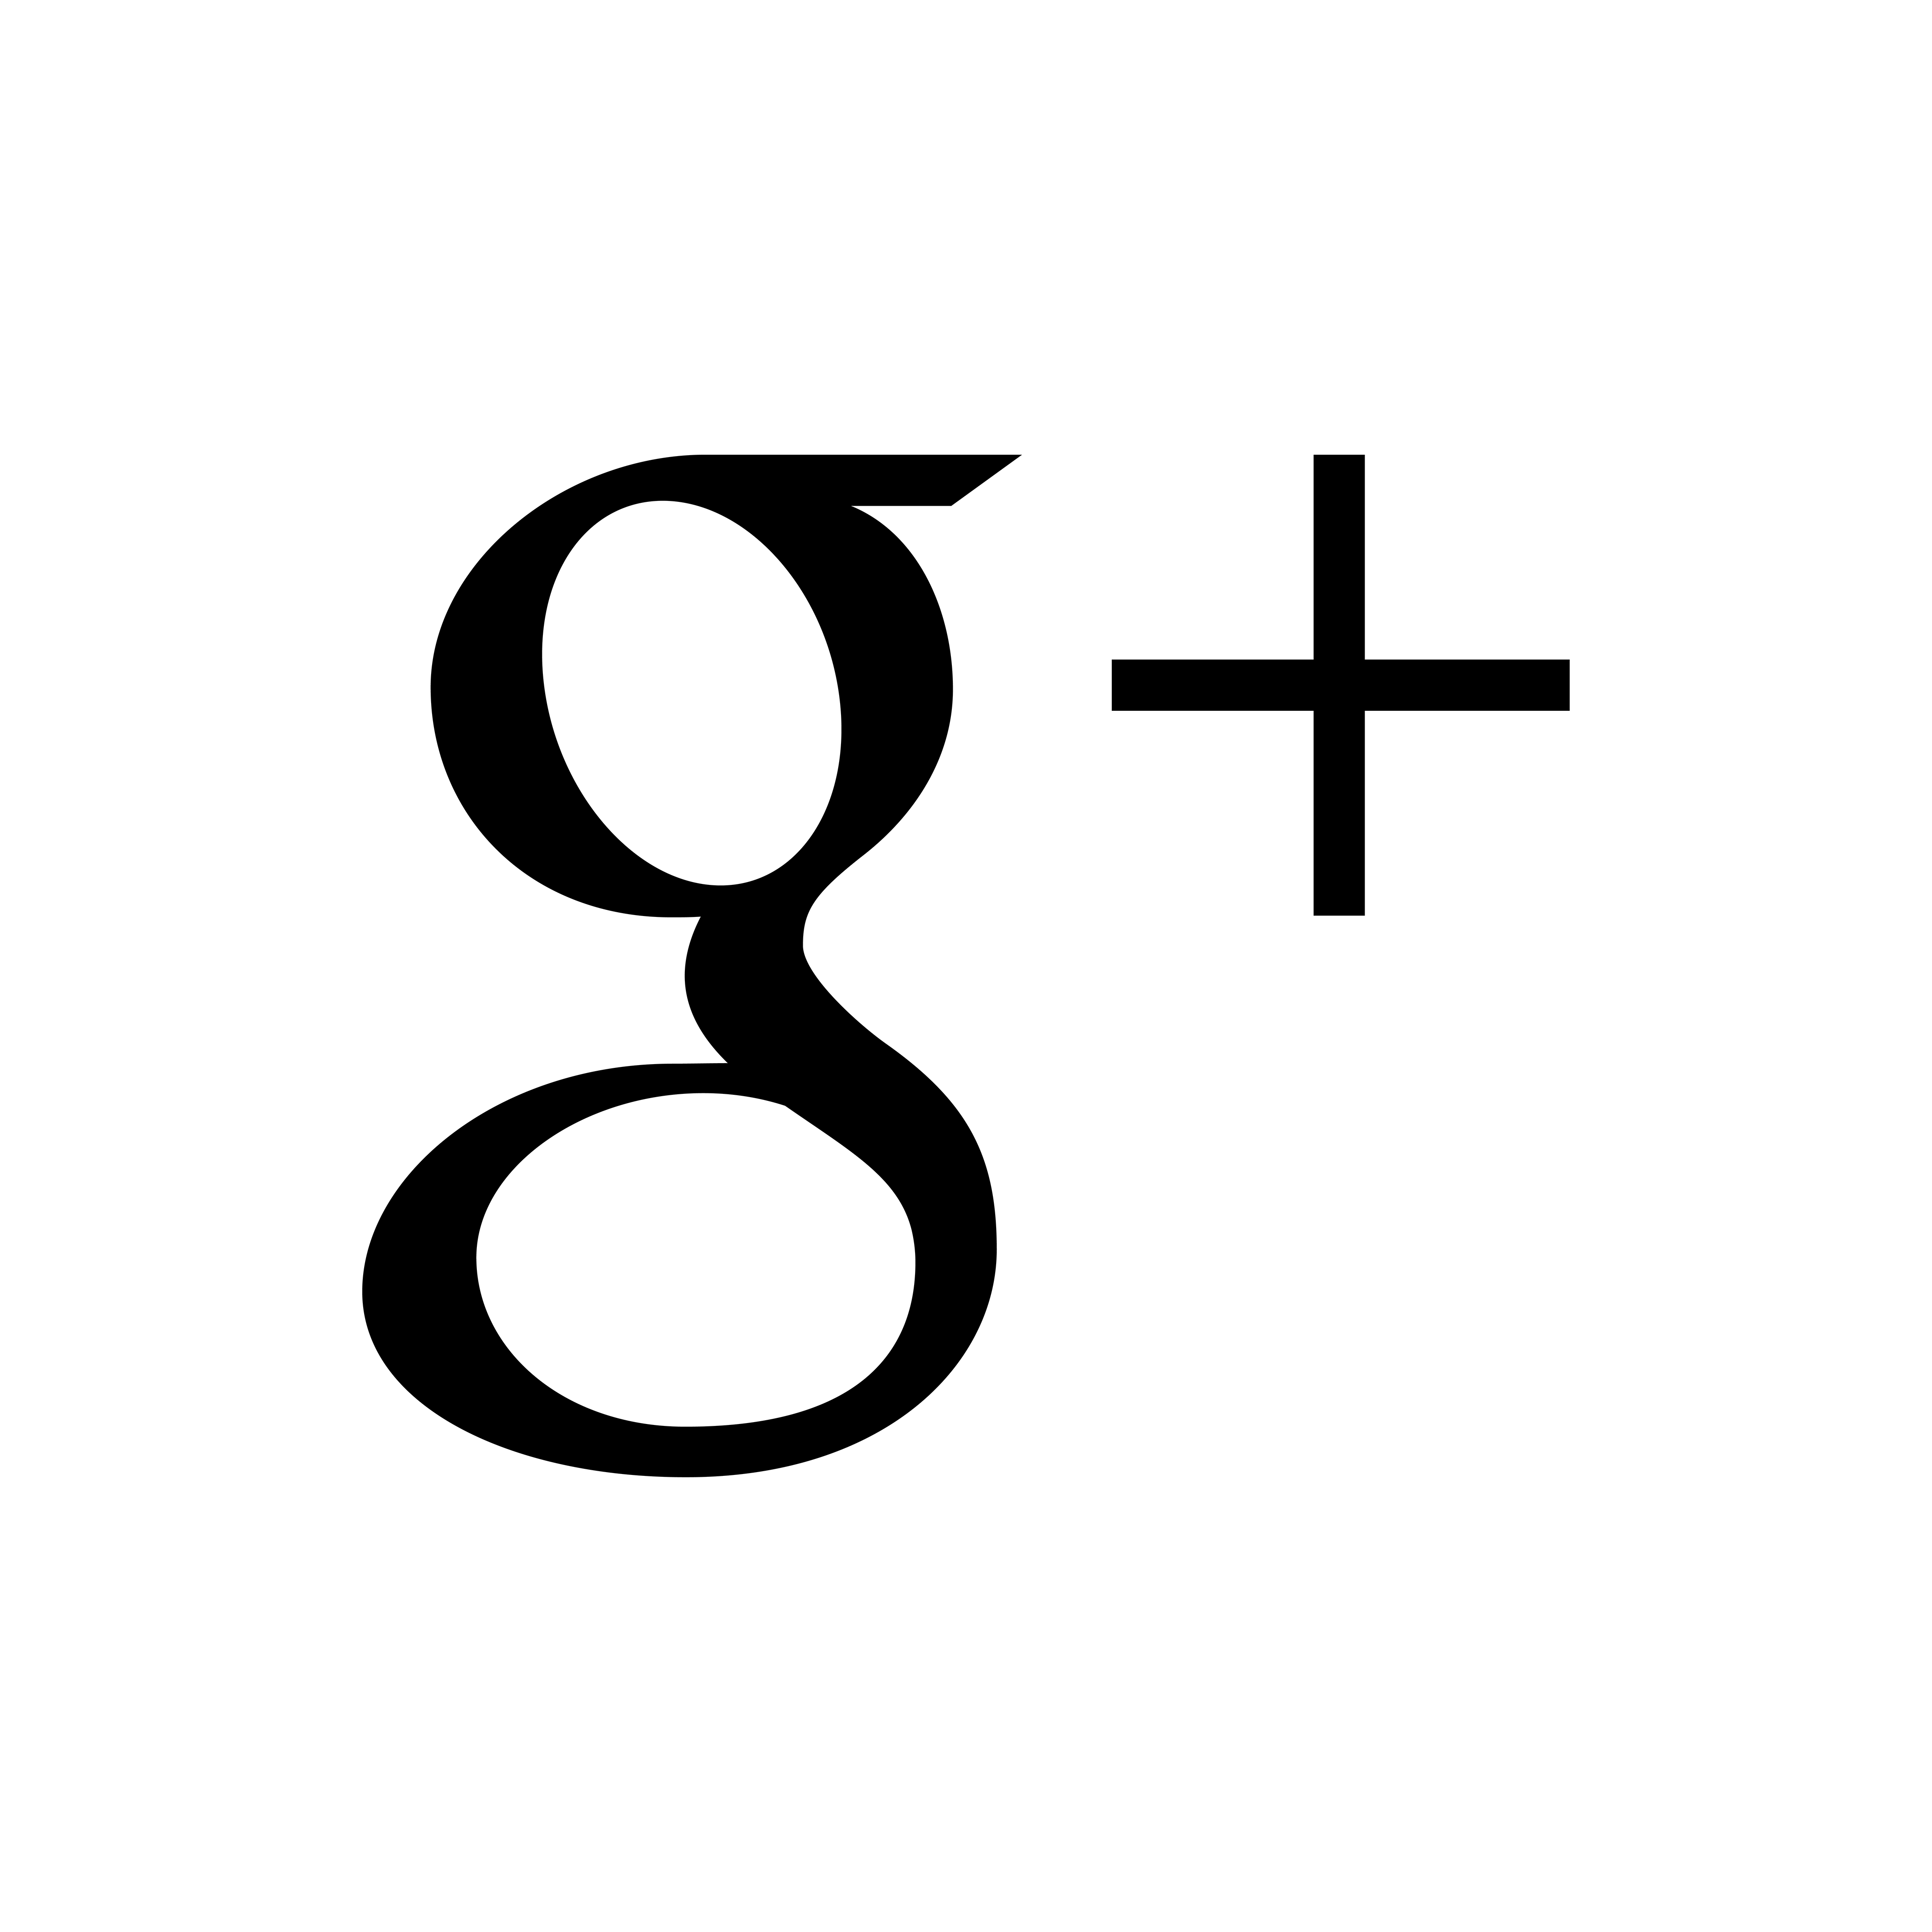 googleplus icons, free icons in Simple Icons, (Icon Search